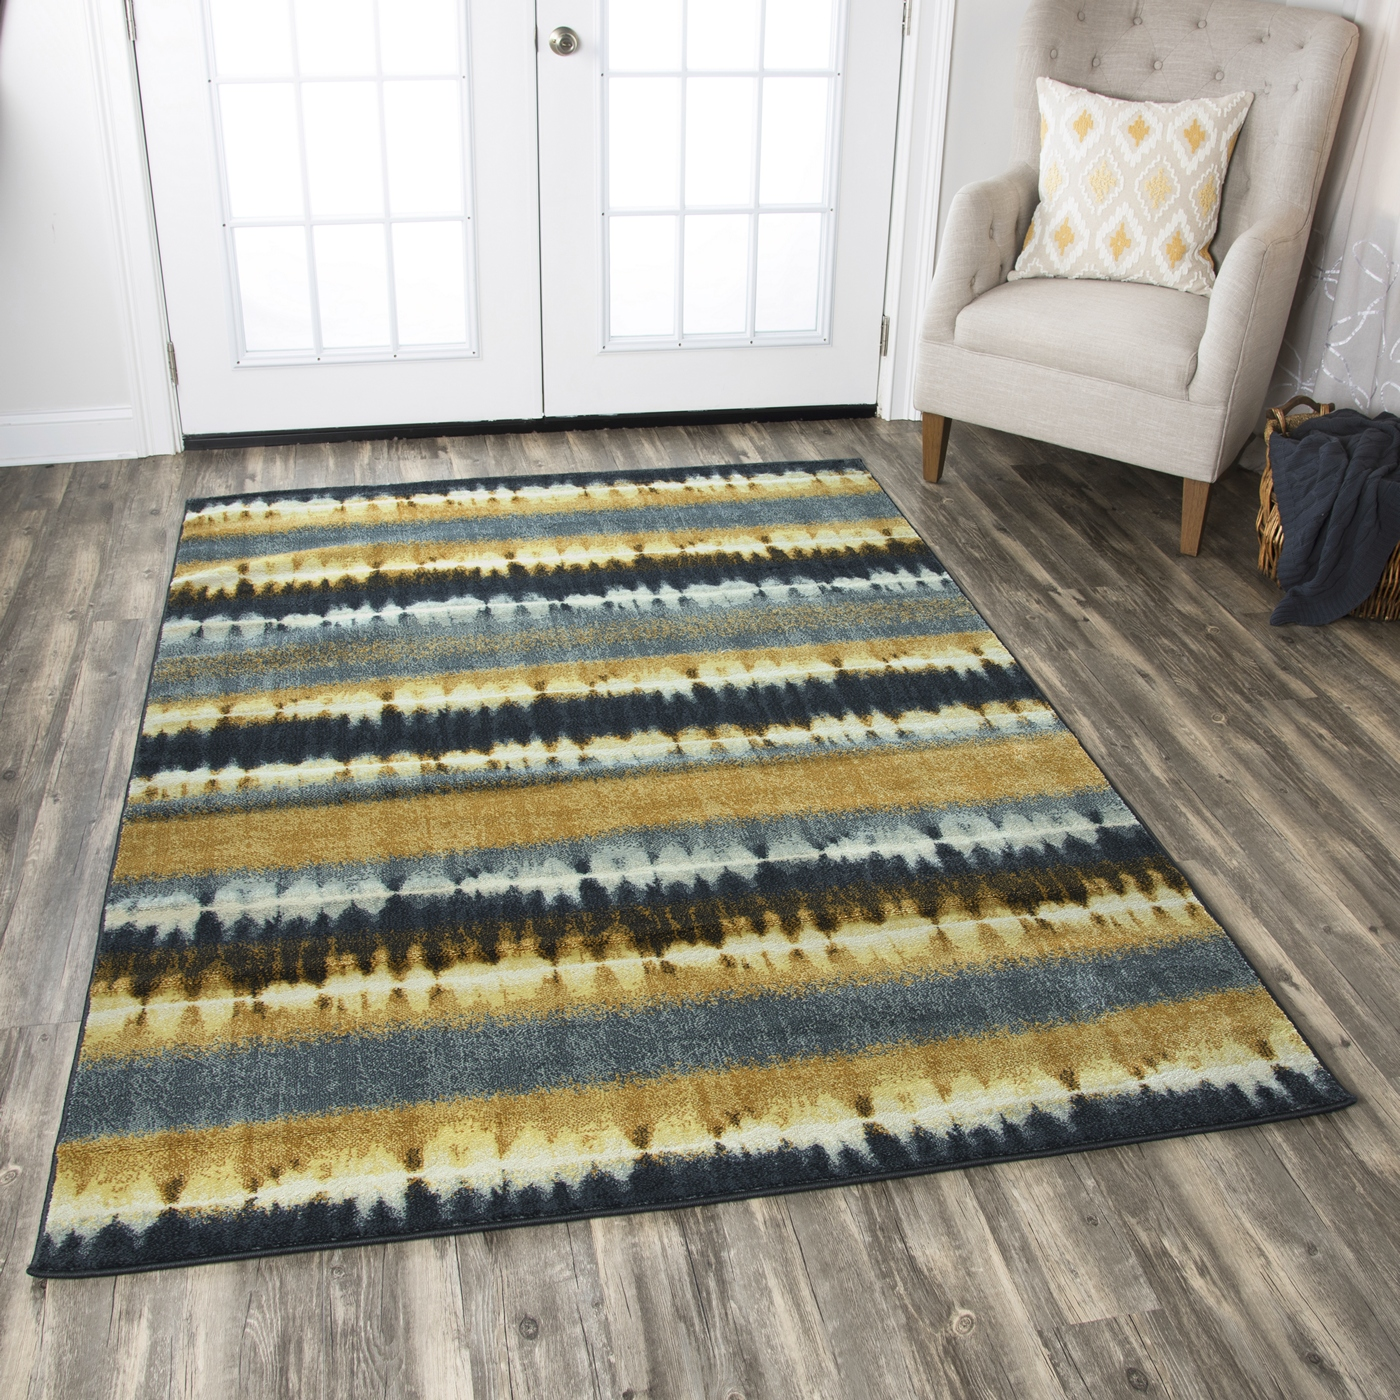 Sorrento Faded Tie-dye Area Rug In Navy Blue White Khaki